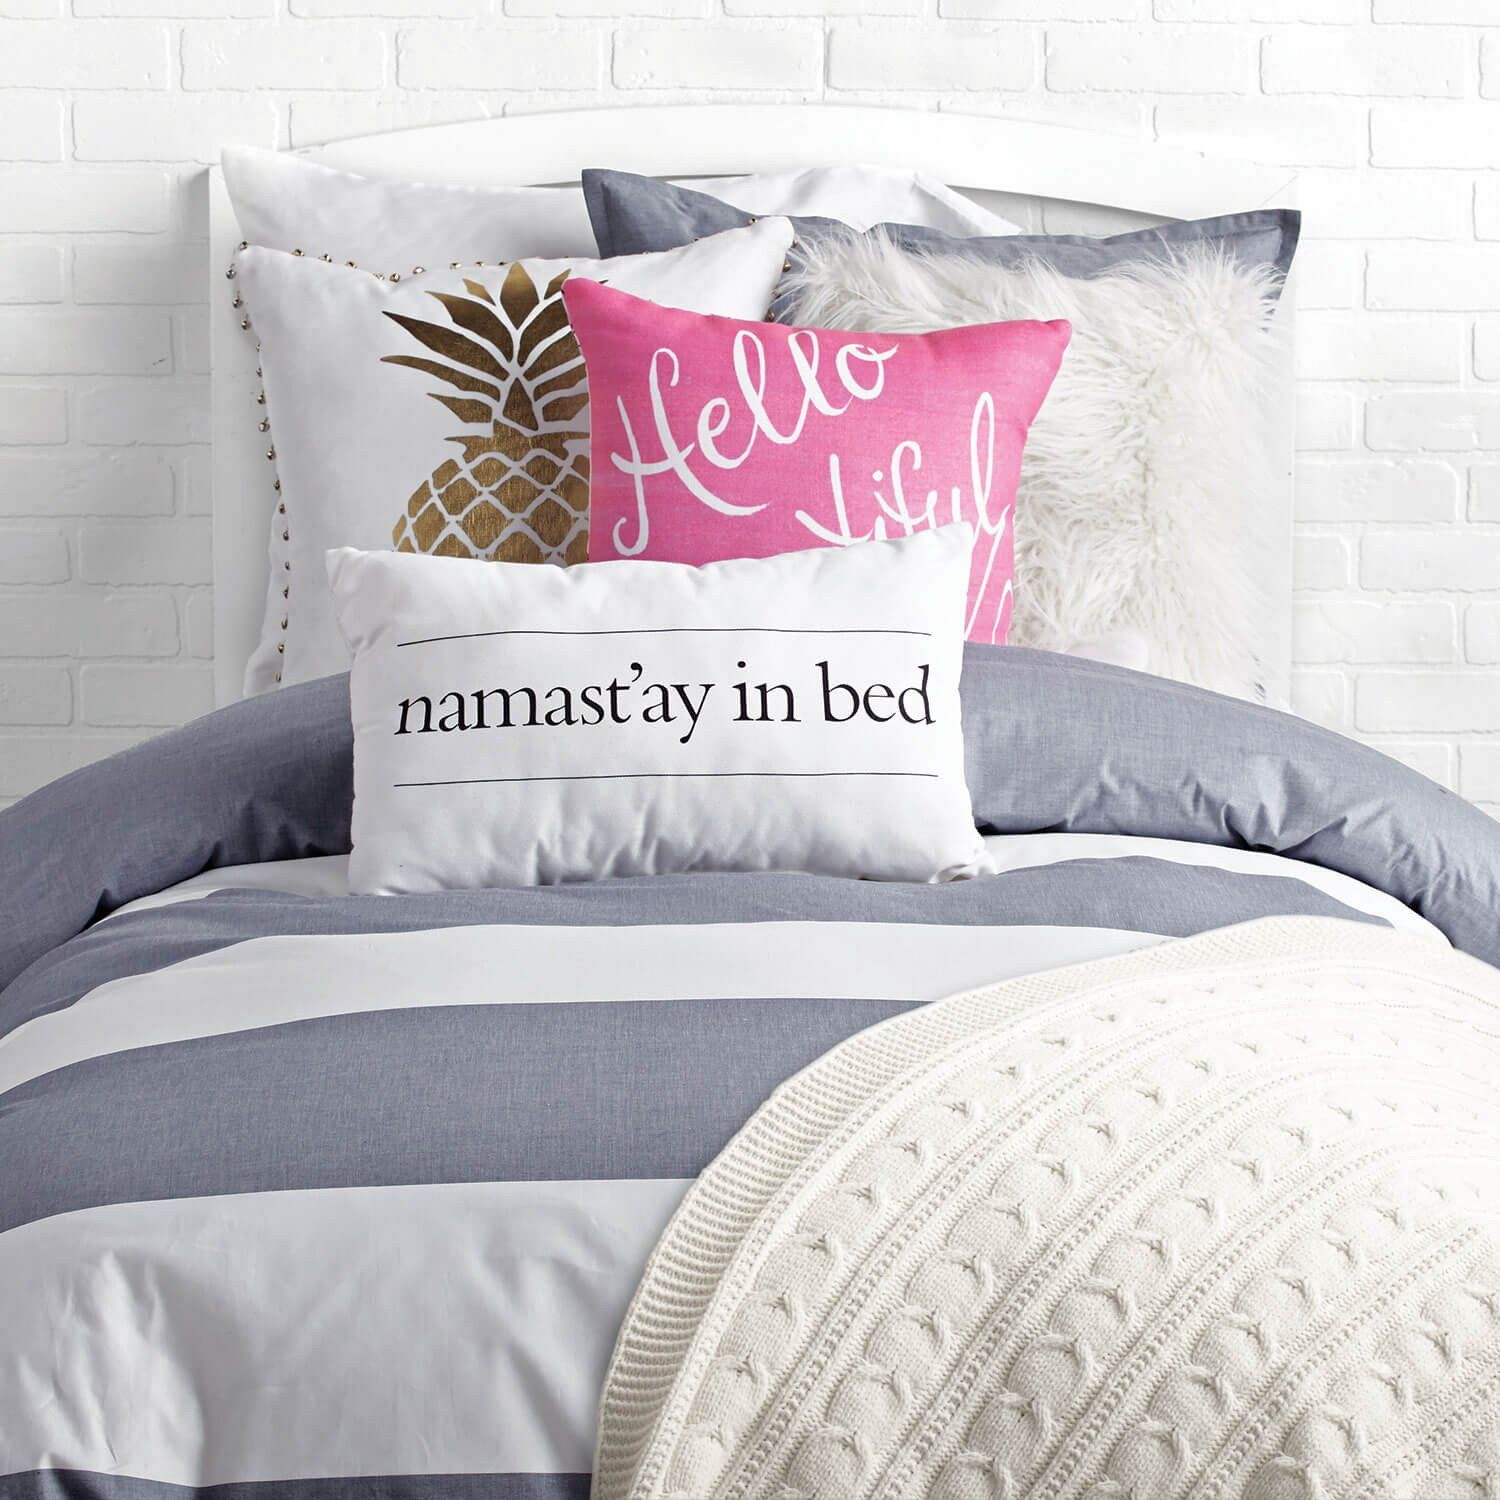 Dormify Offers A Ton Of Fashionable Twin Xl Bedding Options For Your Dorm  Room With Dorm Bedding Sets That Shows Off Your Own Personal Style. Part 87